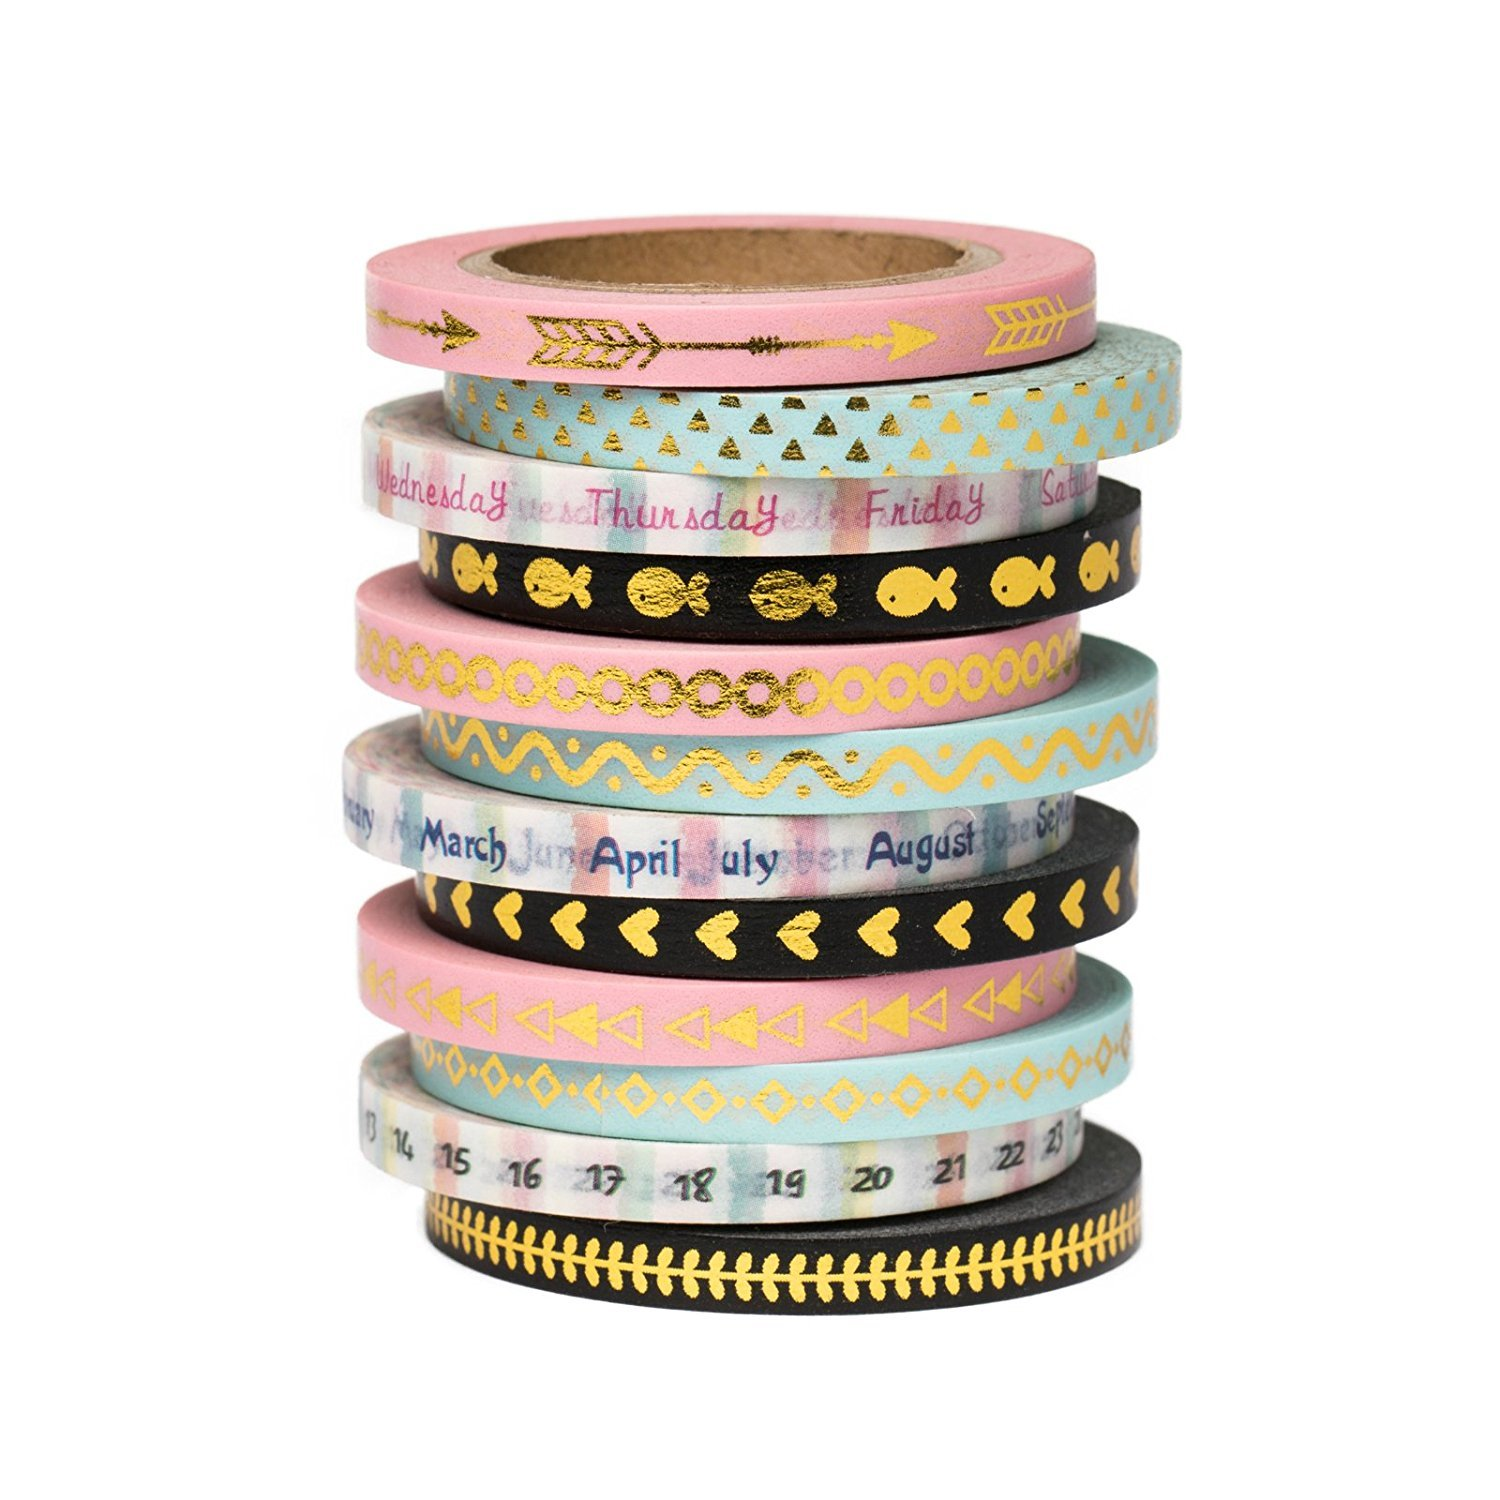 12 Skinny Thin Narrow Washi Tapes Masking Tape 5mm x 10 Metres Rolls for Crafting susiebsupplies